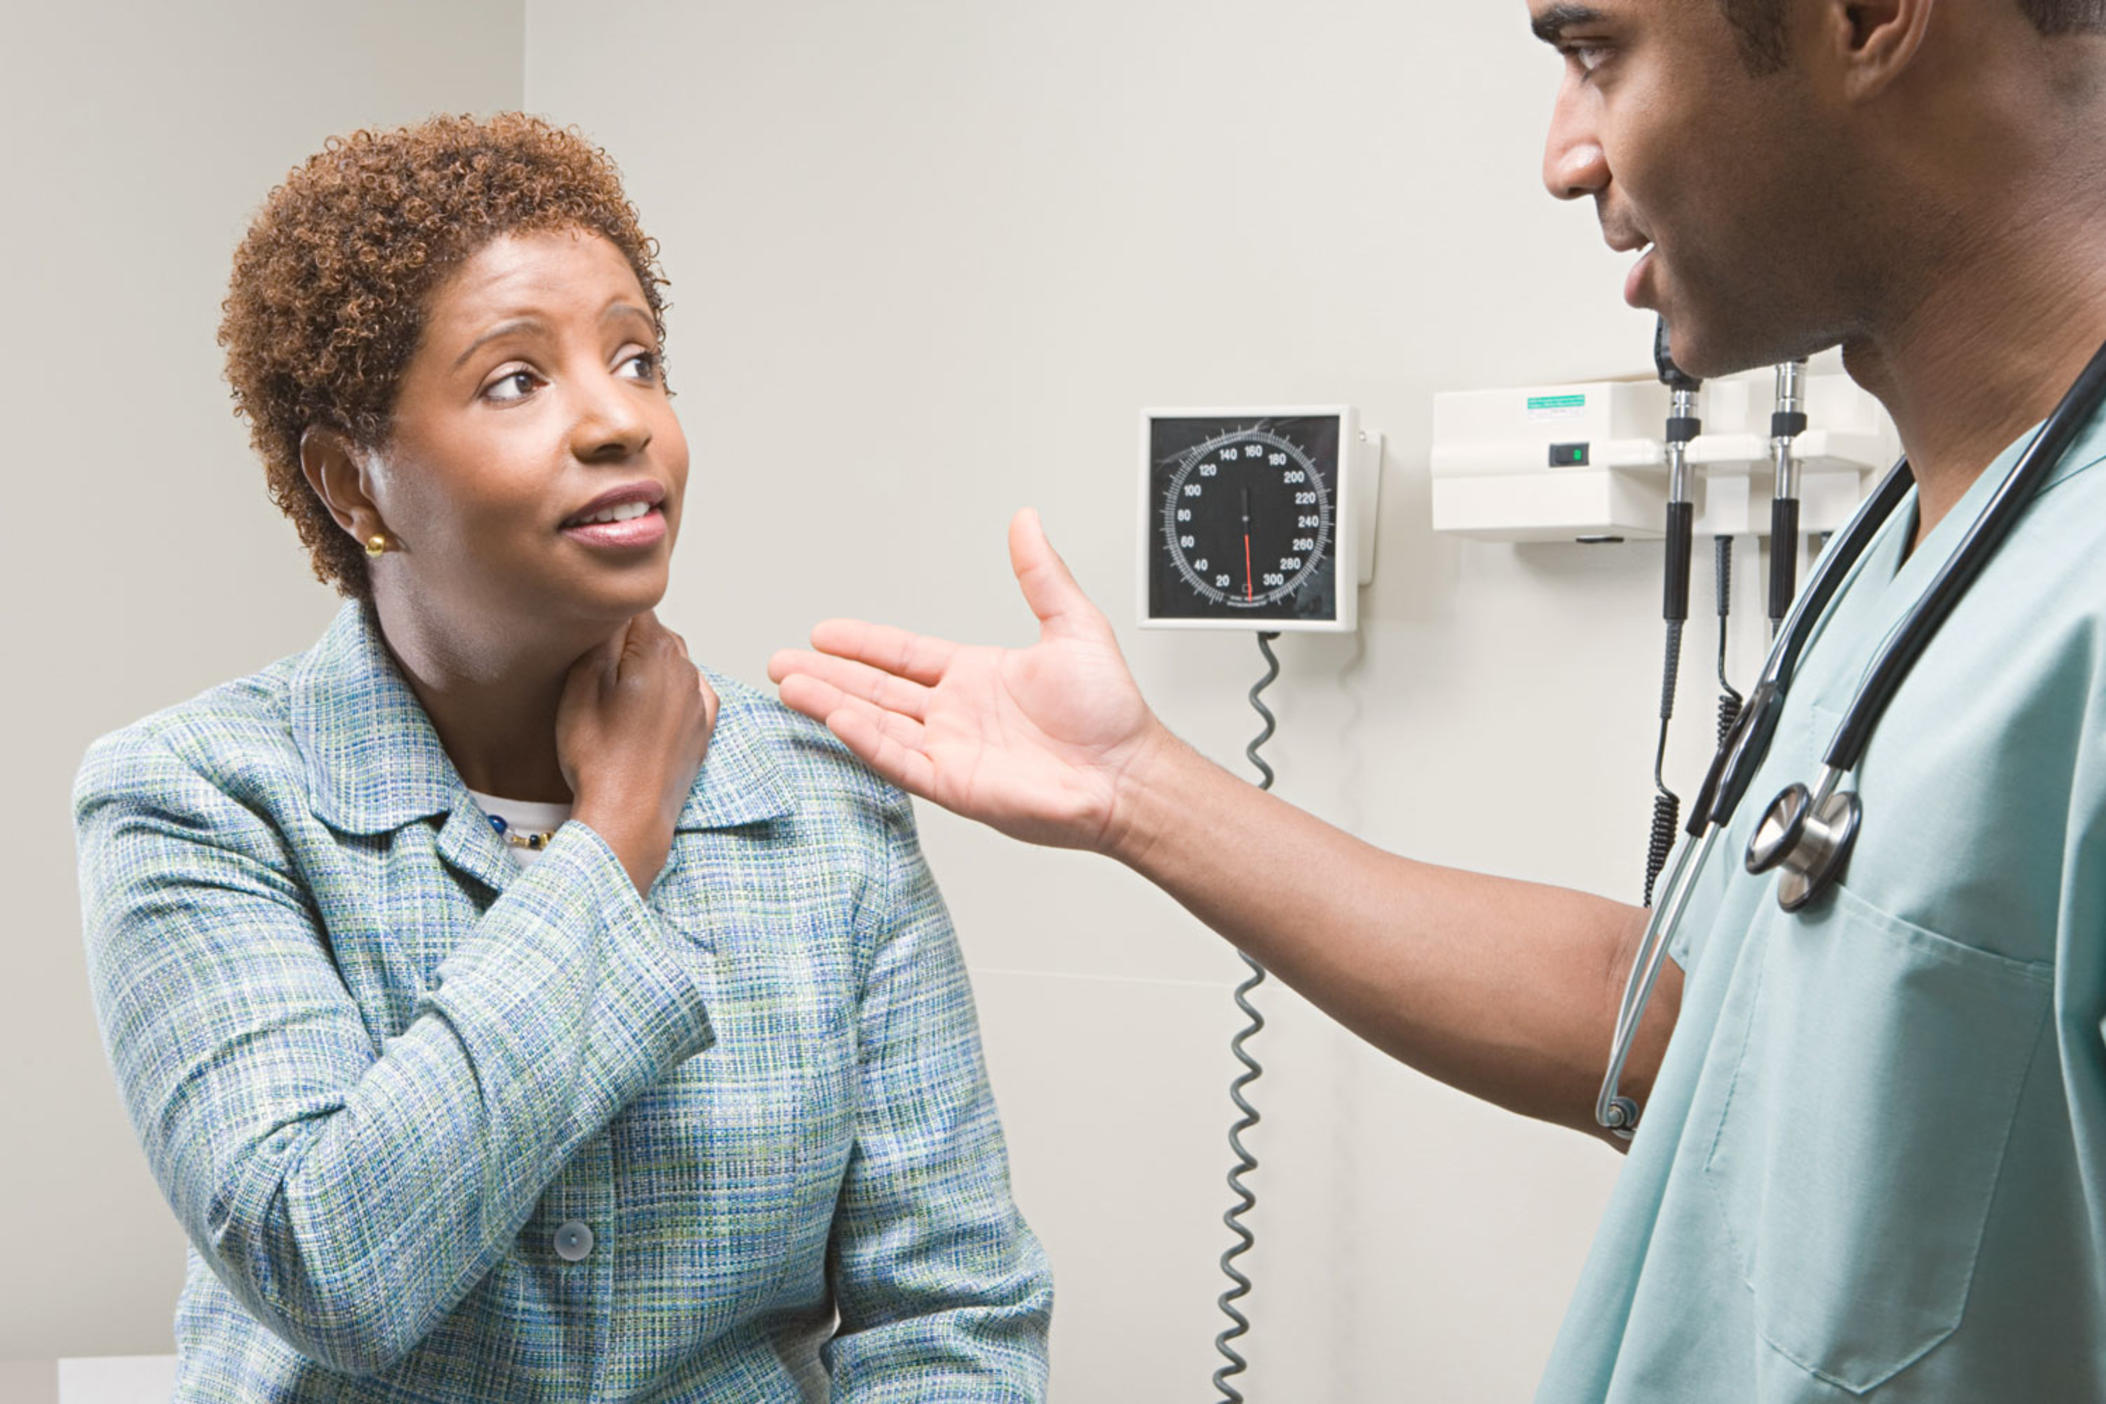 A female patient meets with her medical doctor.